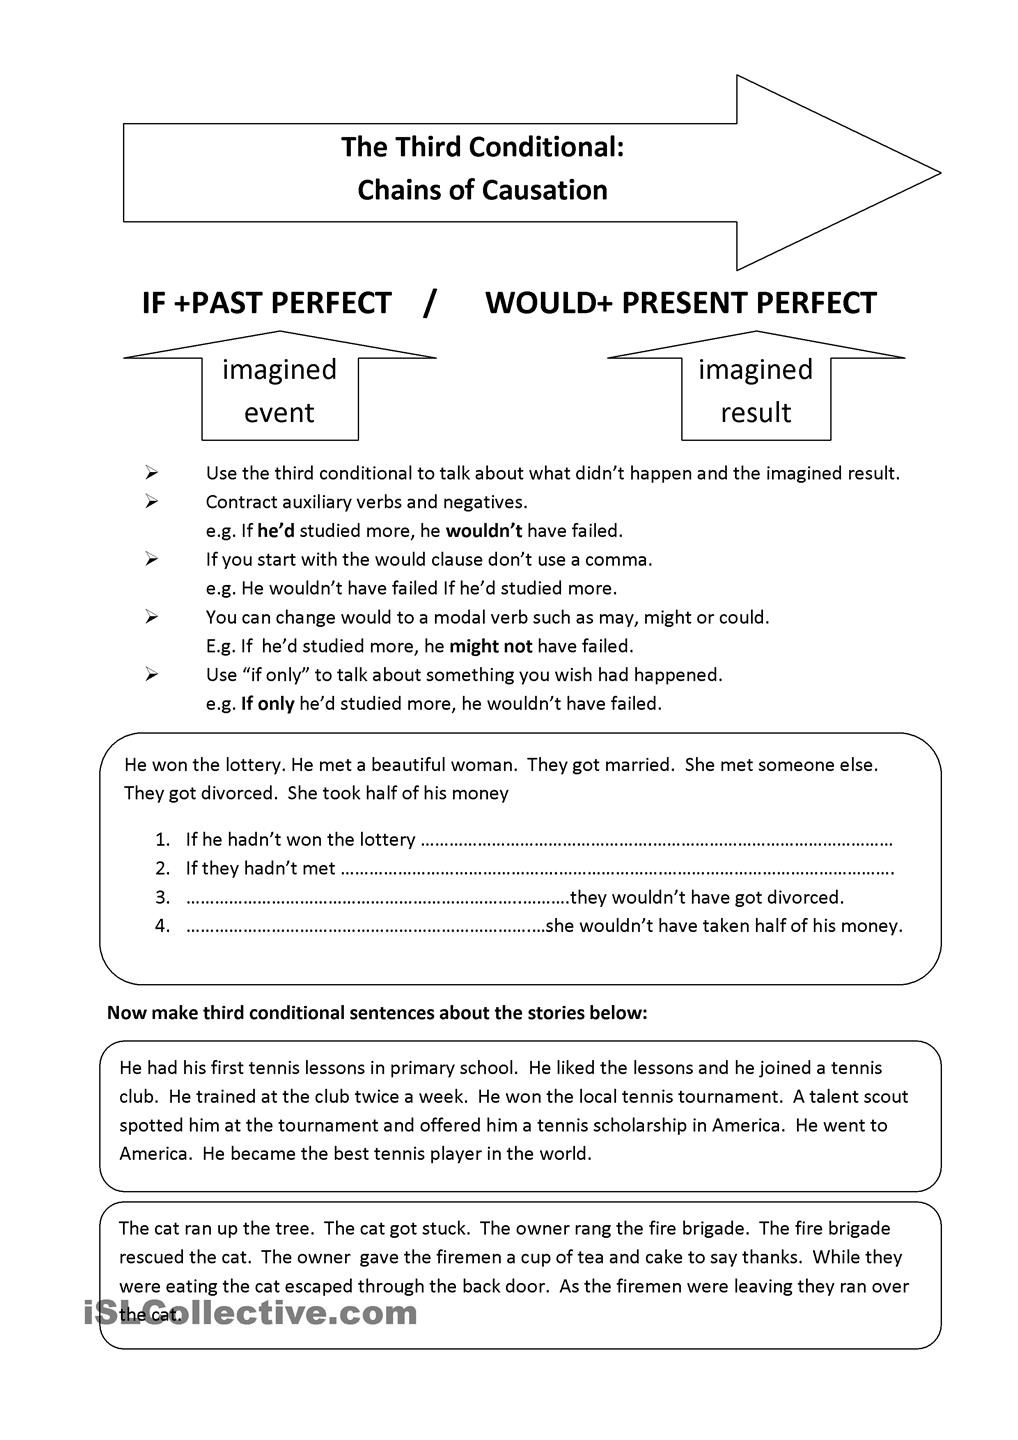 Workbooks writing grammar worksheets : Third Conditional | etude | Pinterest | Third, English and Worksheets